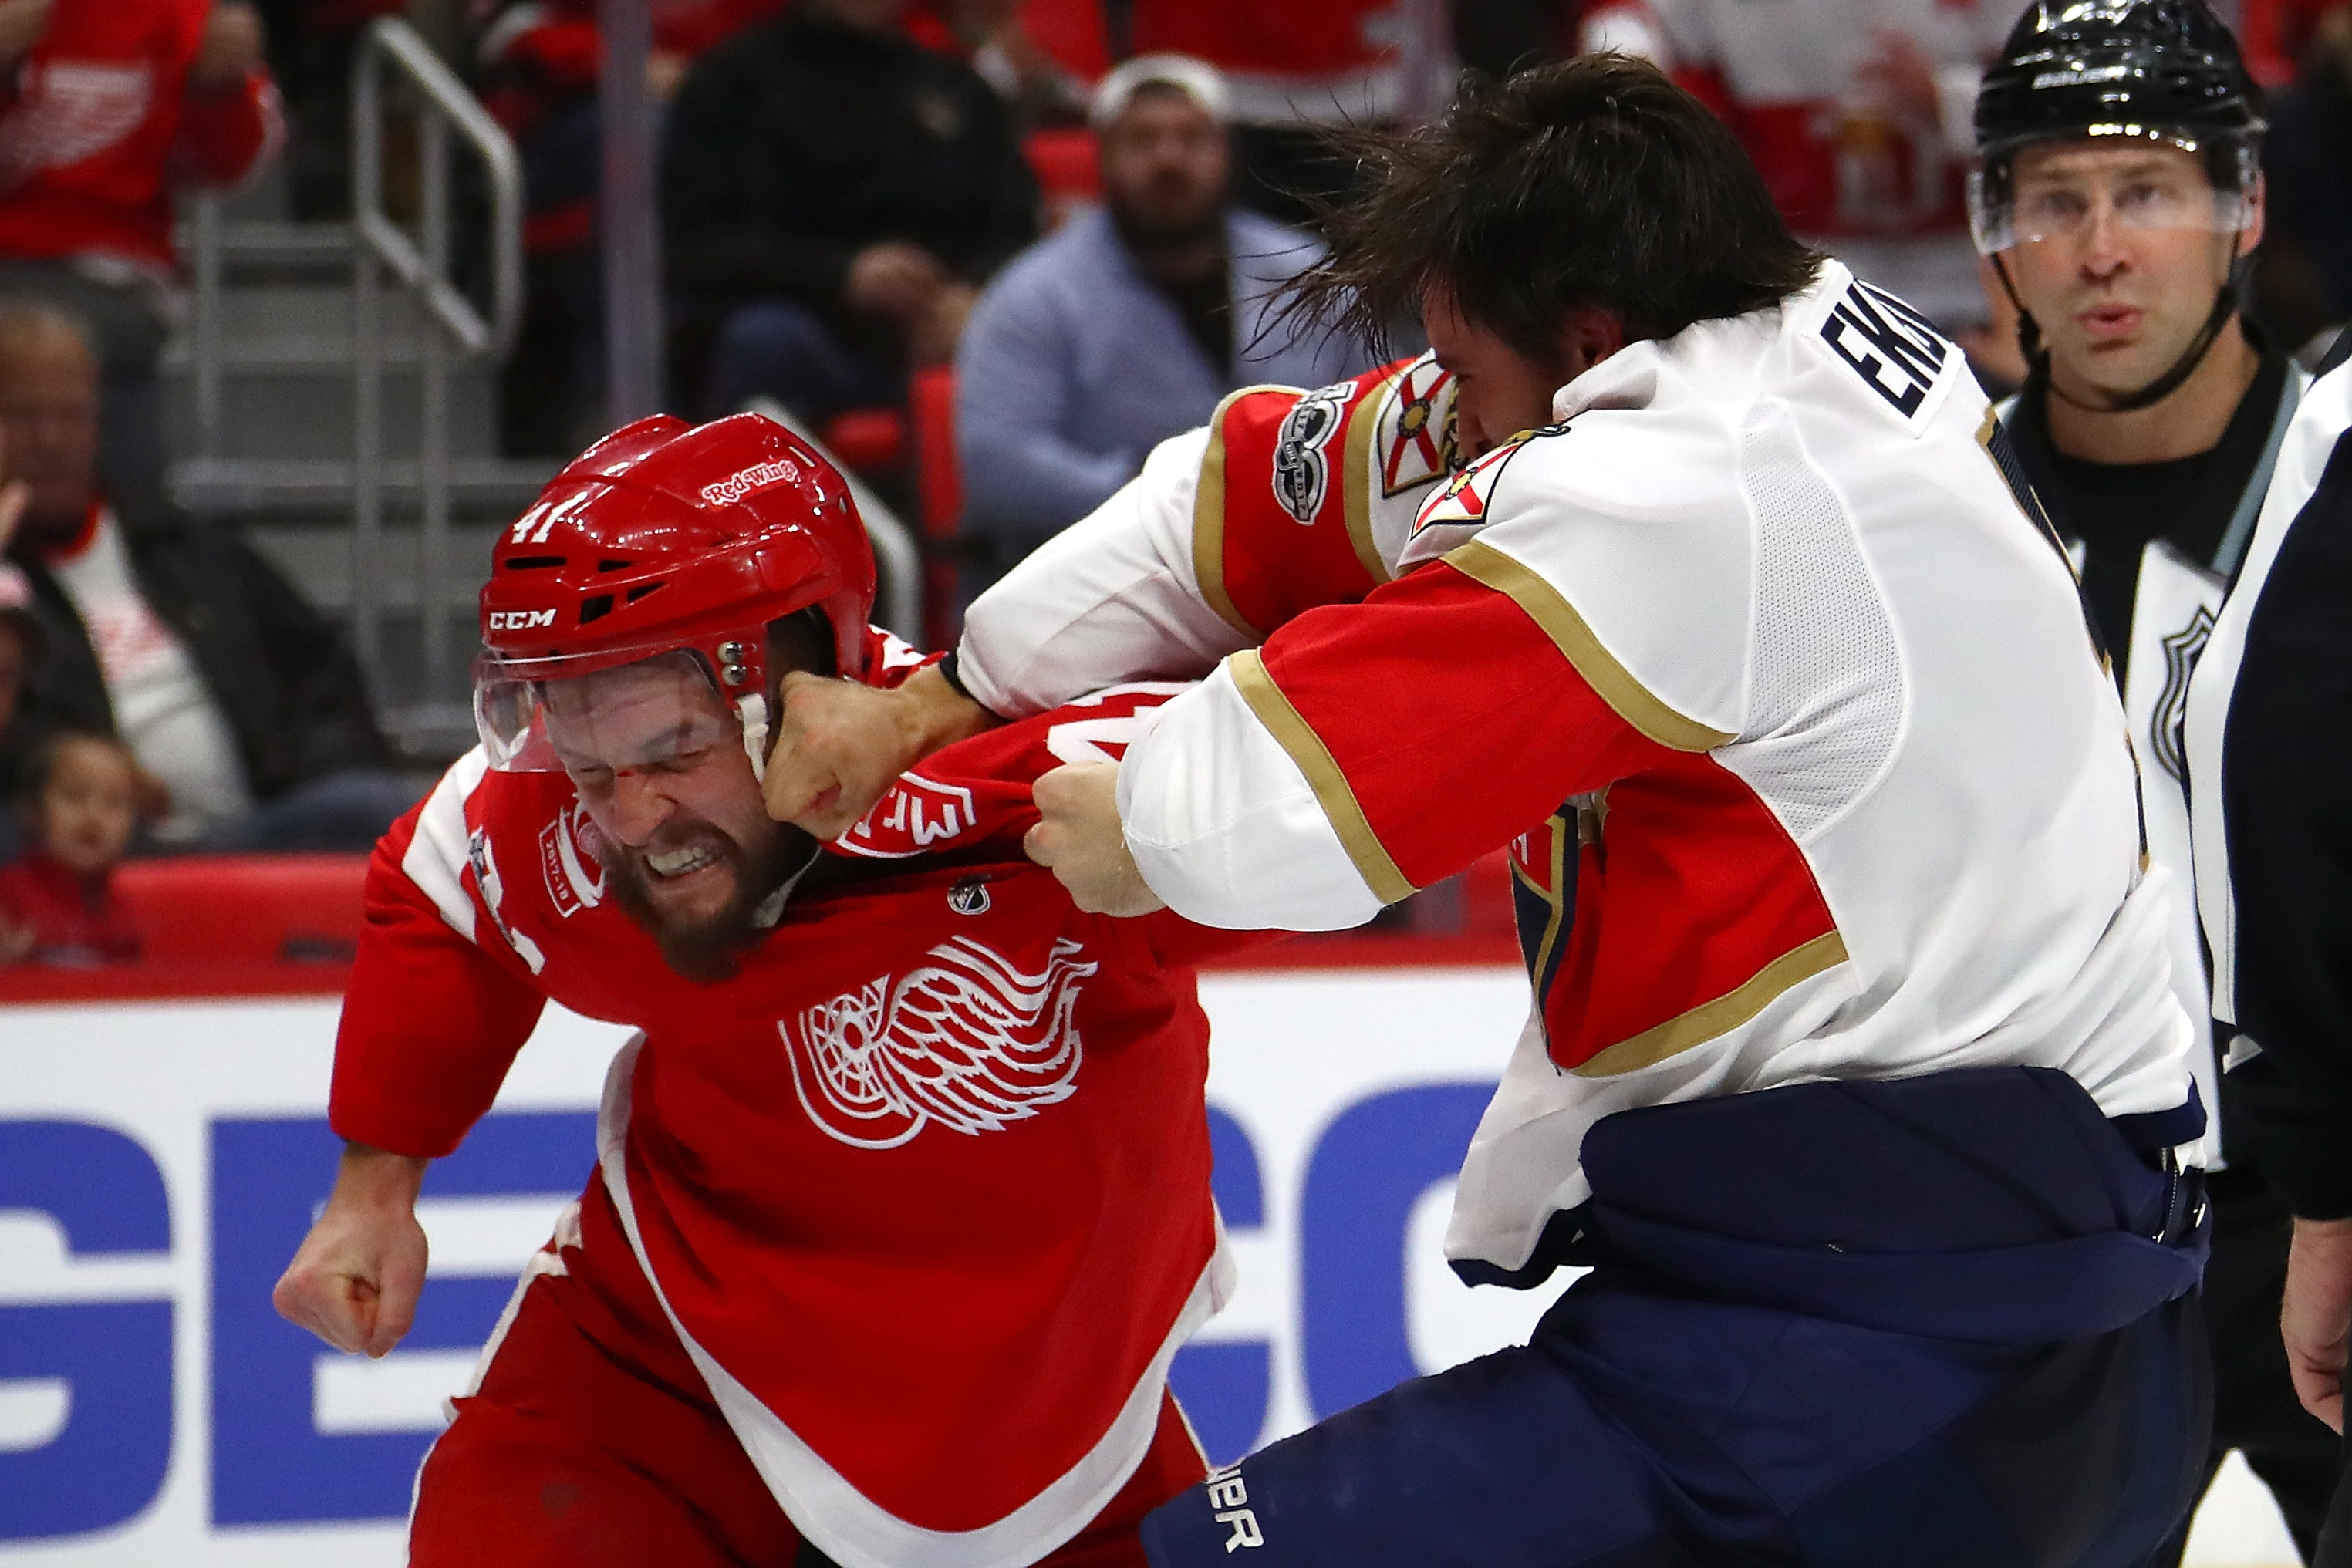 Two NHL players engage in a fight